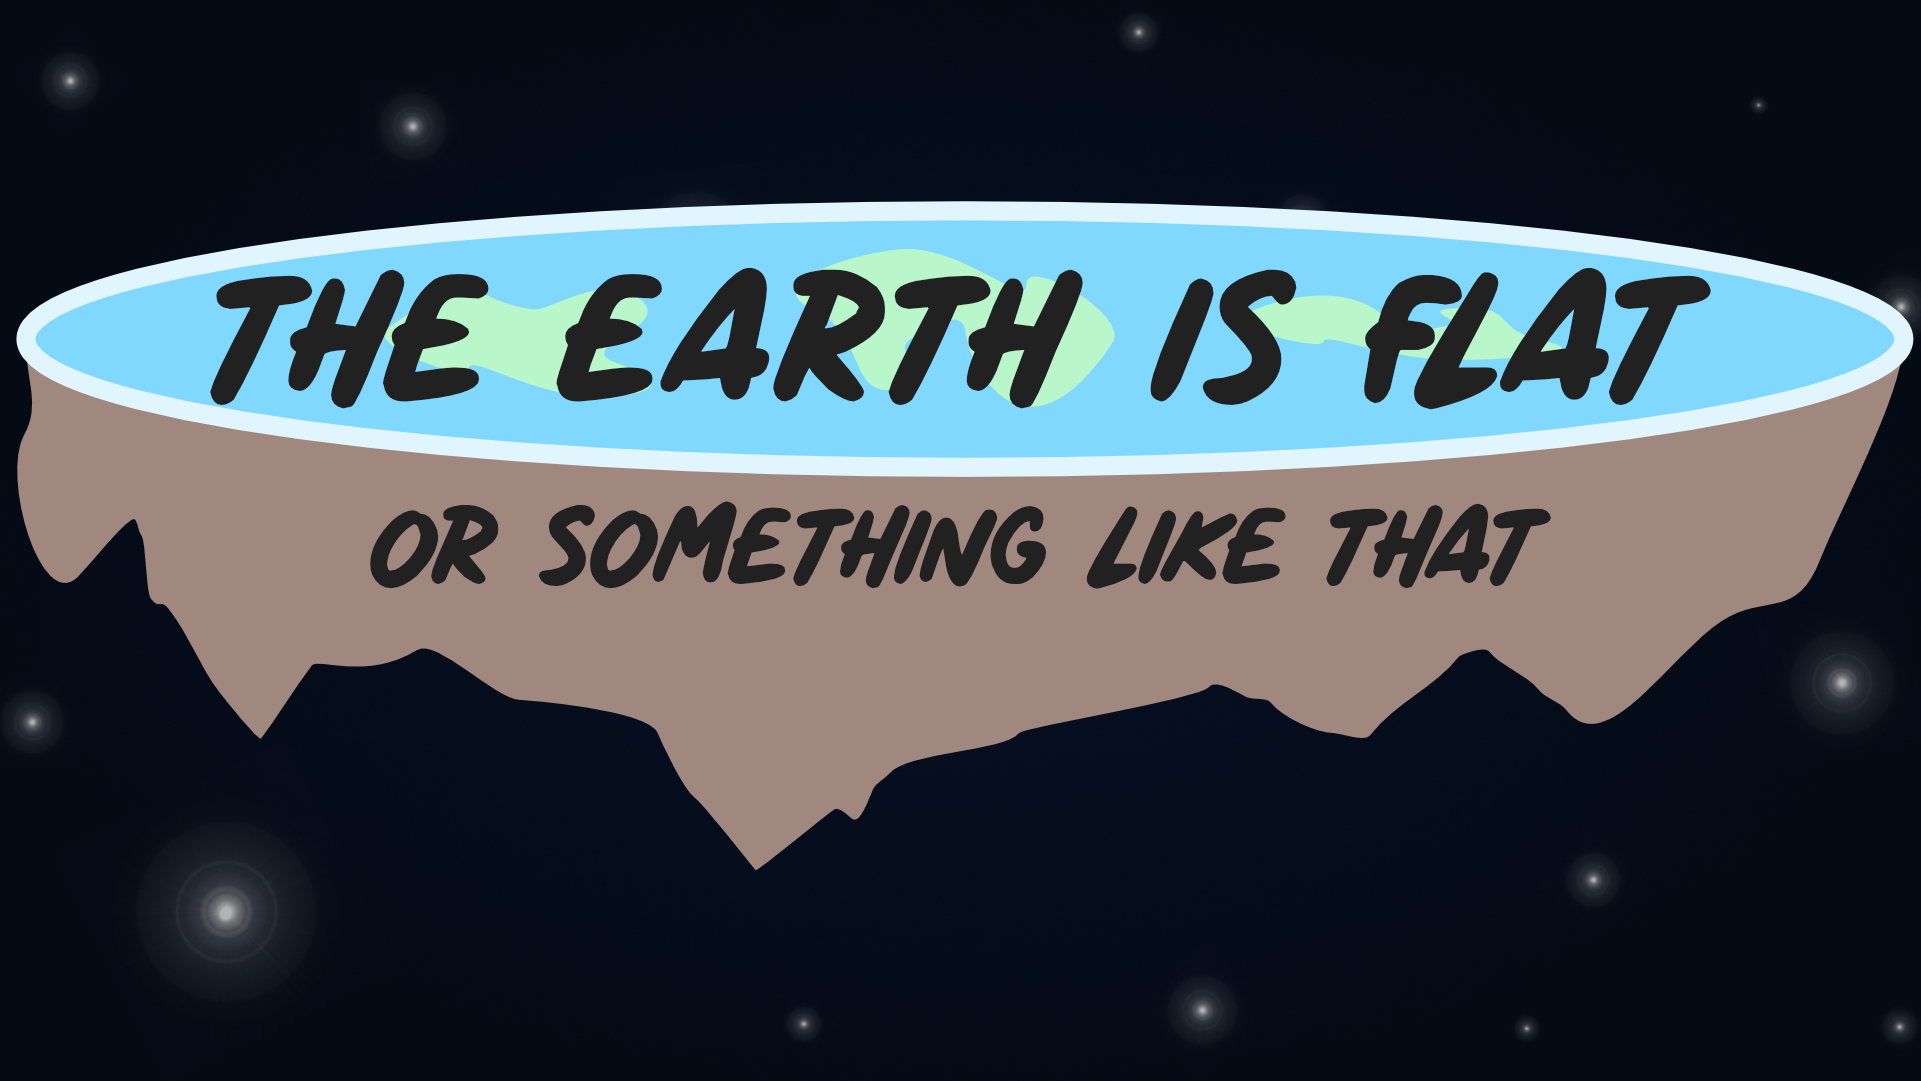 The Earth is Flat or something like that...